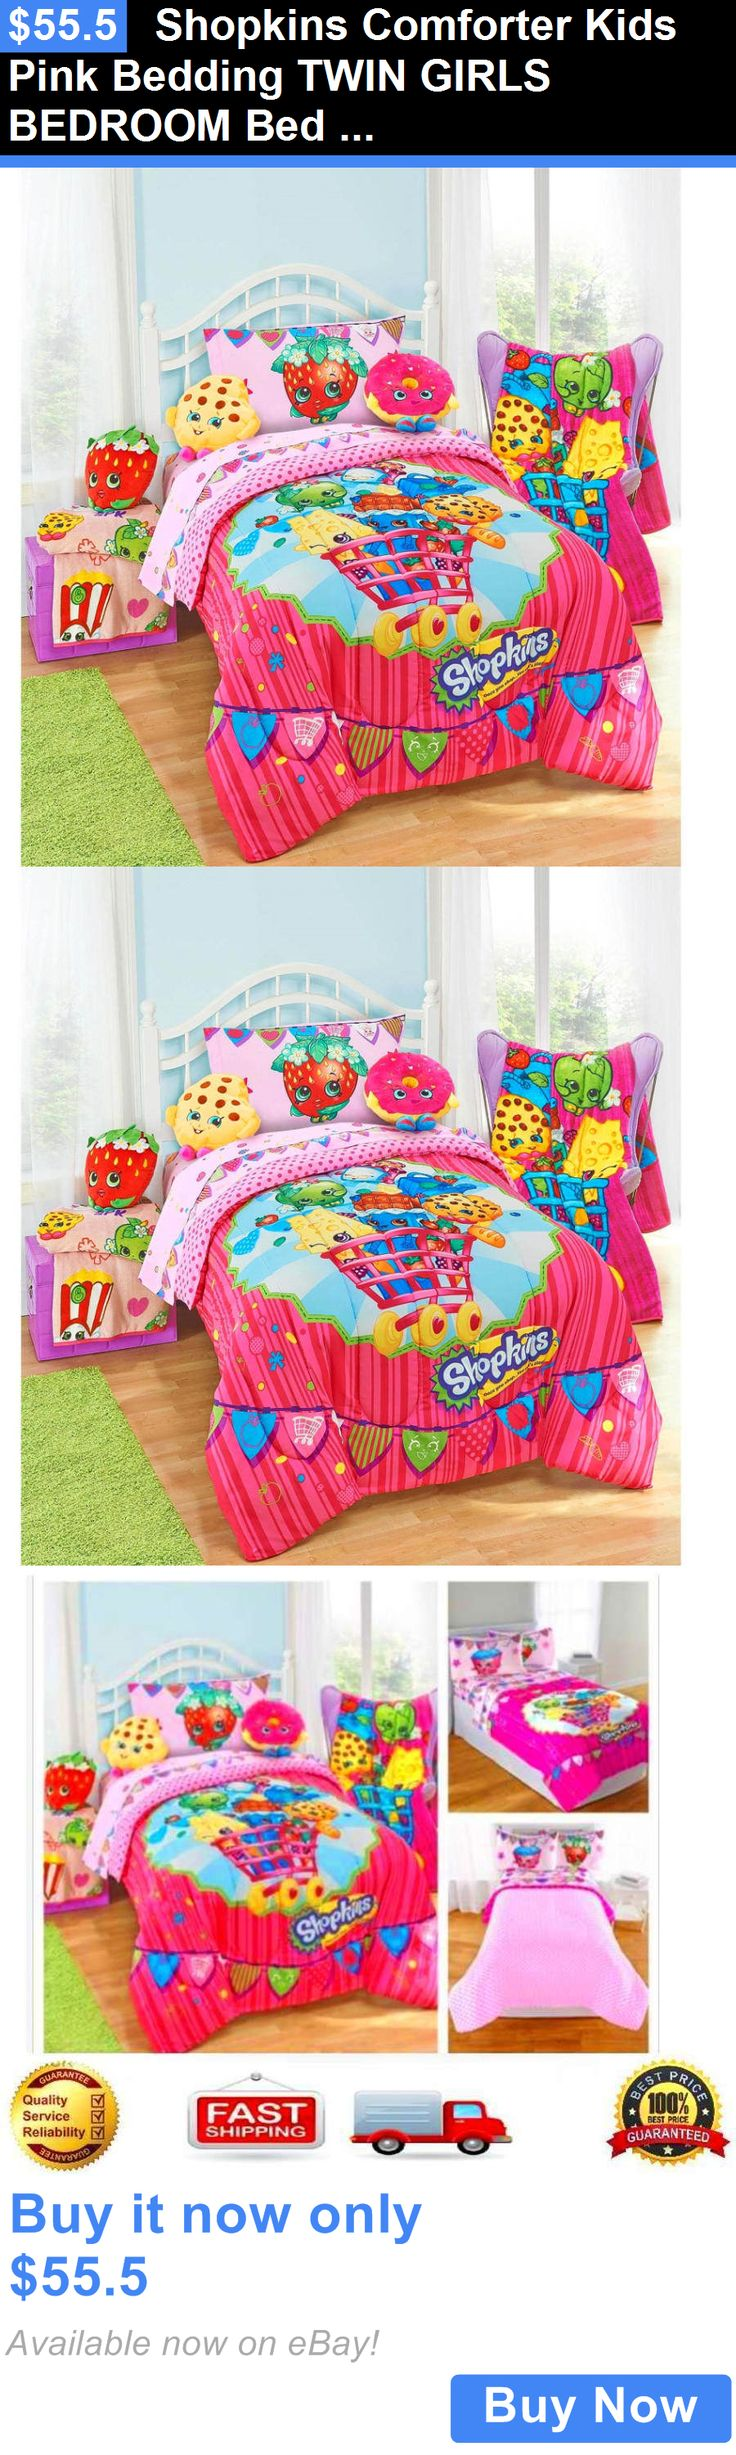 Kids at Home: Shopkins Comforter Kids Pink Bedding Twin Girls Bedroom Bed Cartoo...